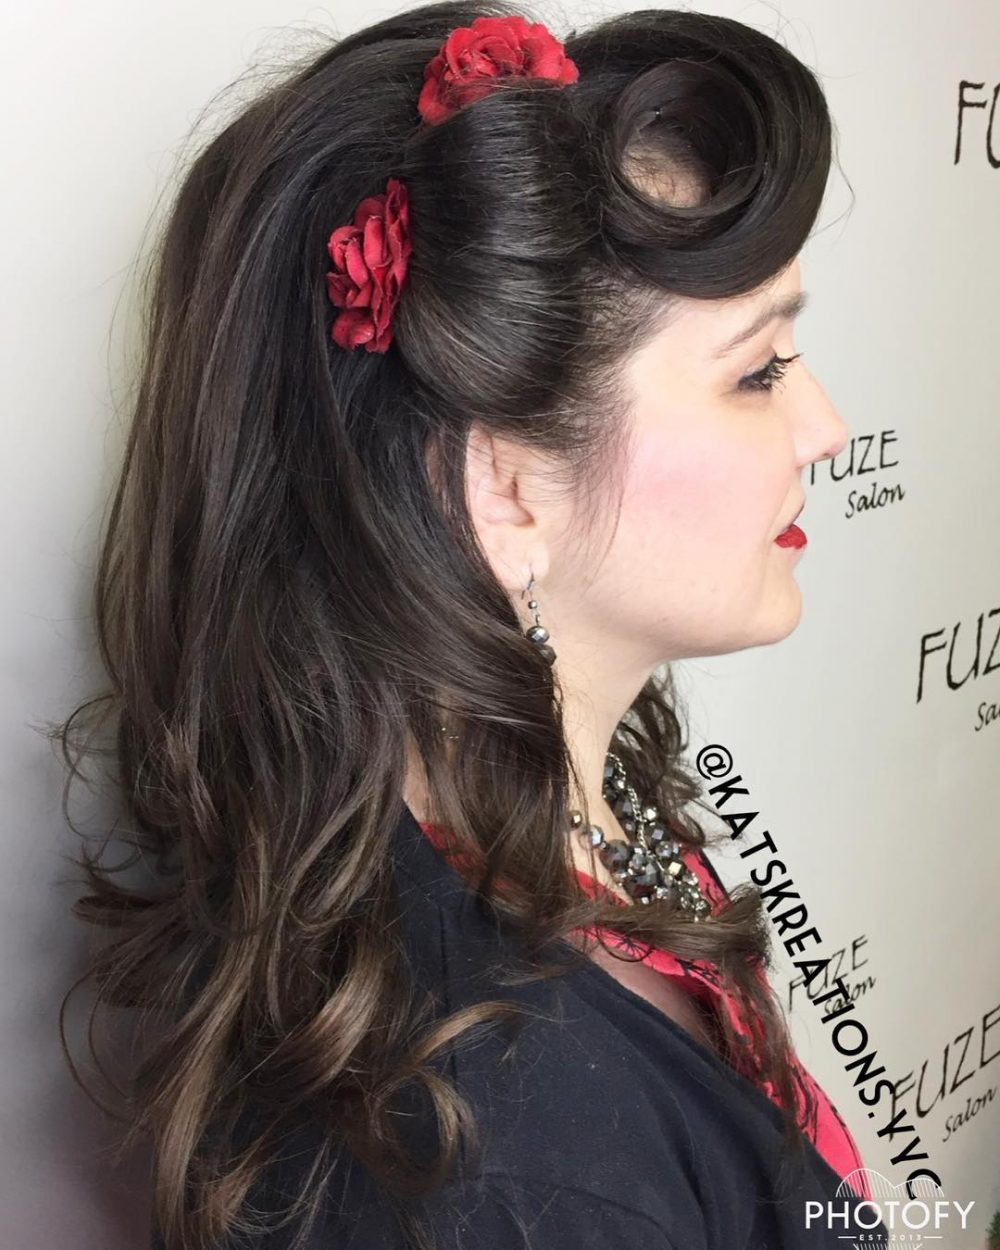 41 pin up hairstyles that scream retro chic tutorials. Black Bedroom Furniture Sets. Home Design Ideas